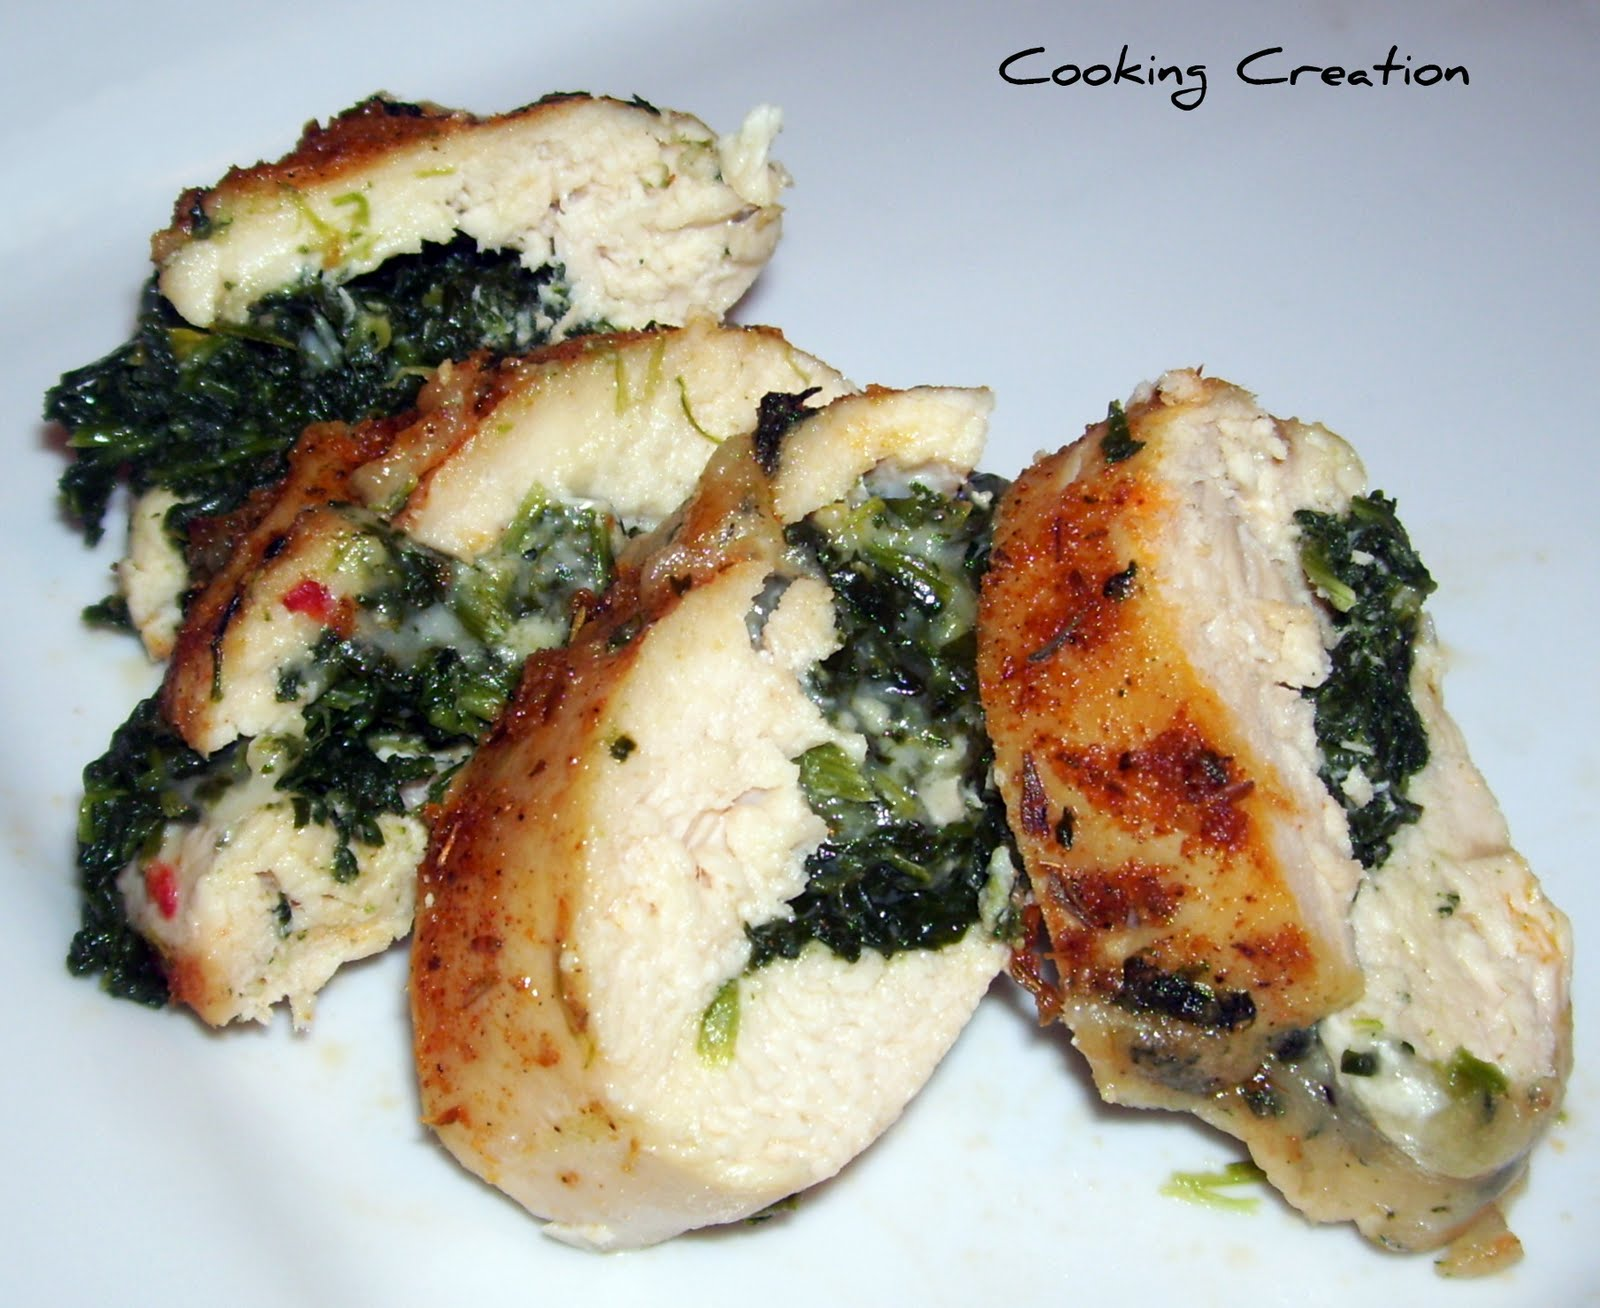 ... Creation: Cajun Chicken Stuffed with Pepper Jack Cheese & Spinach